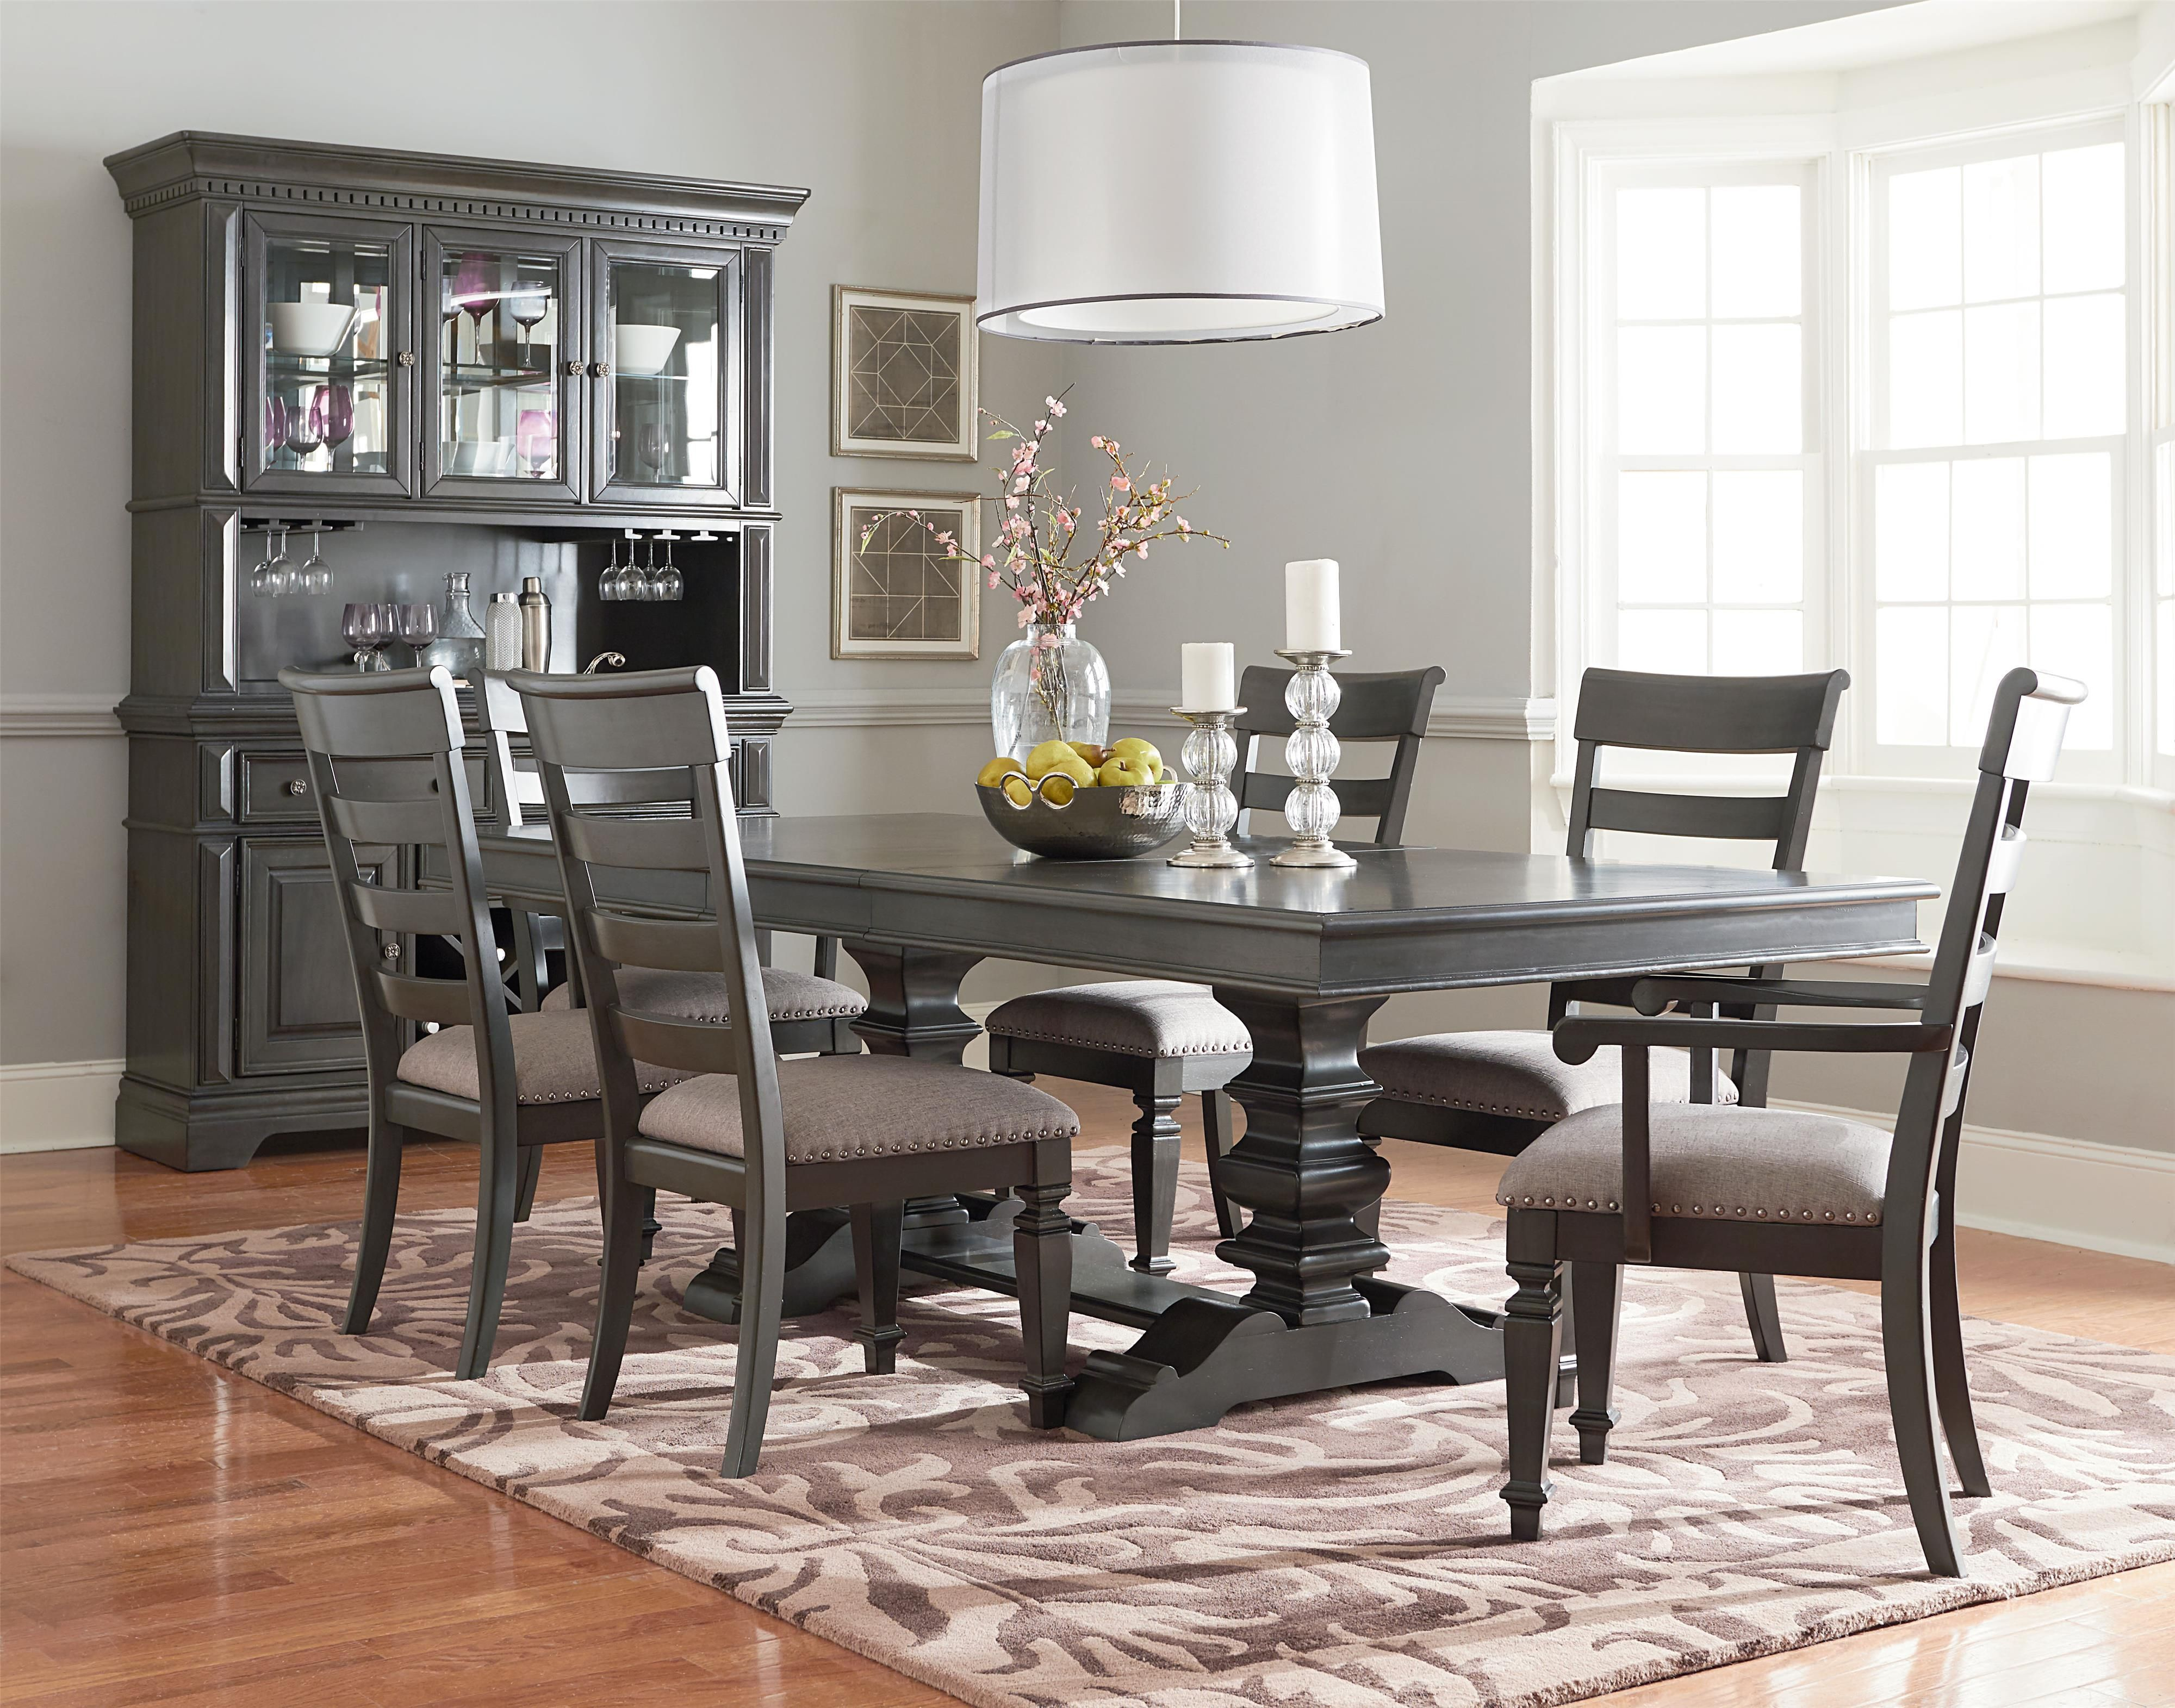 Dining Room Group With Trestle Table Standard Furniture Wolf Dining Room Sets Dining Room Table Trestle Dining Tables